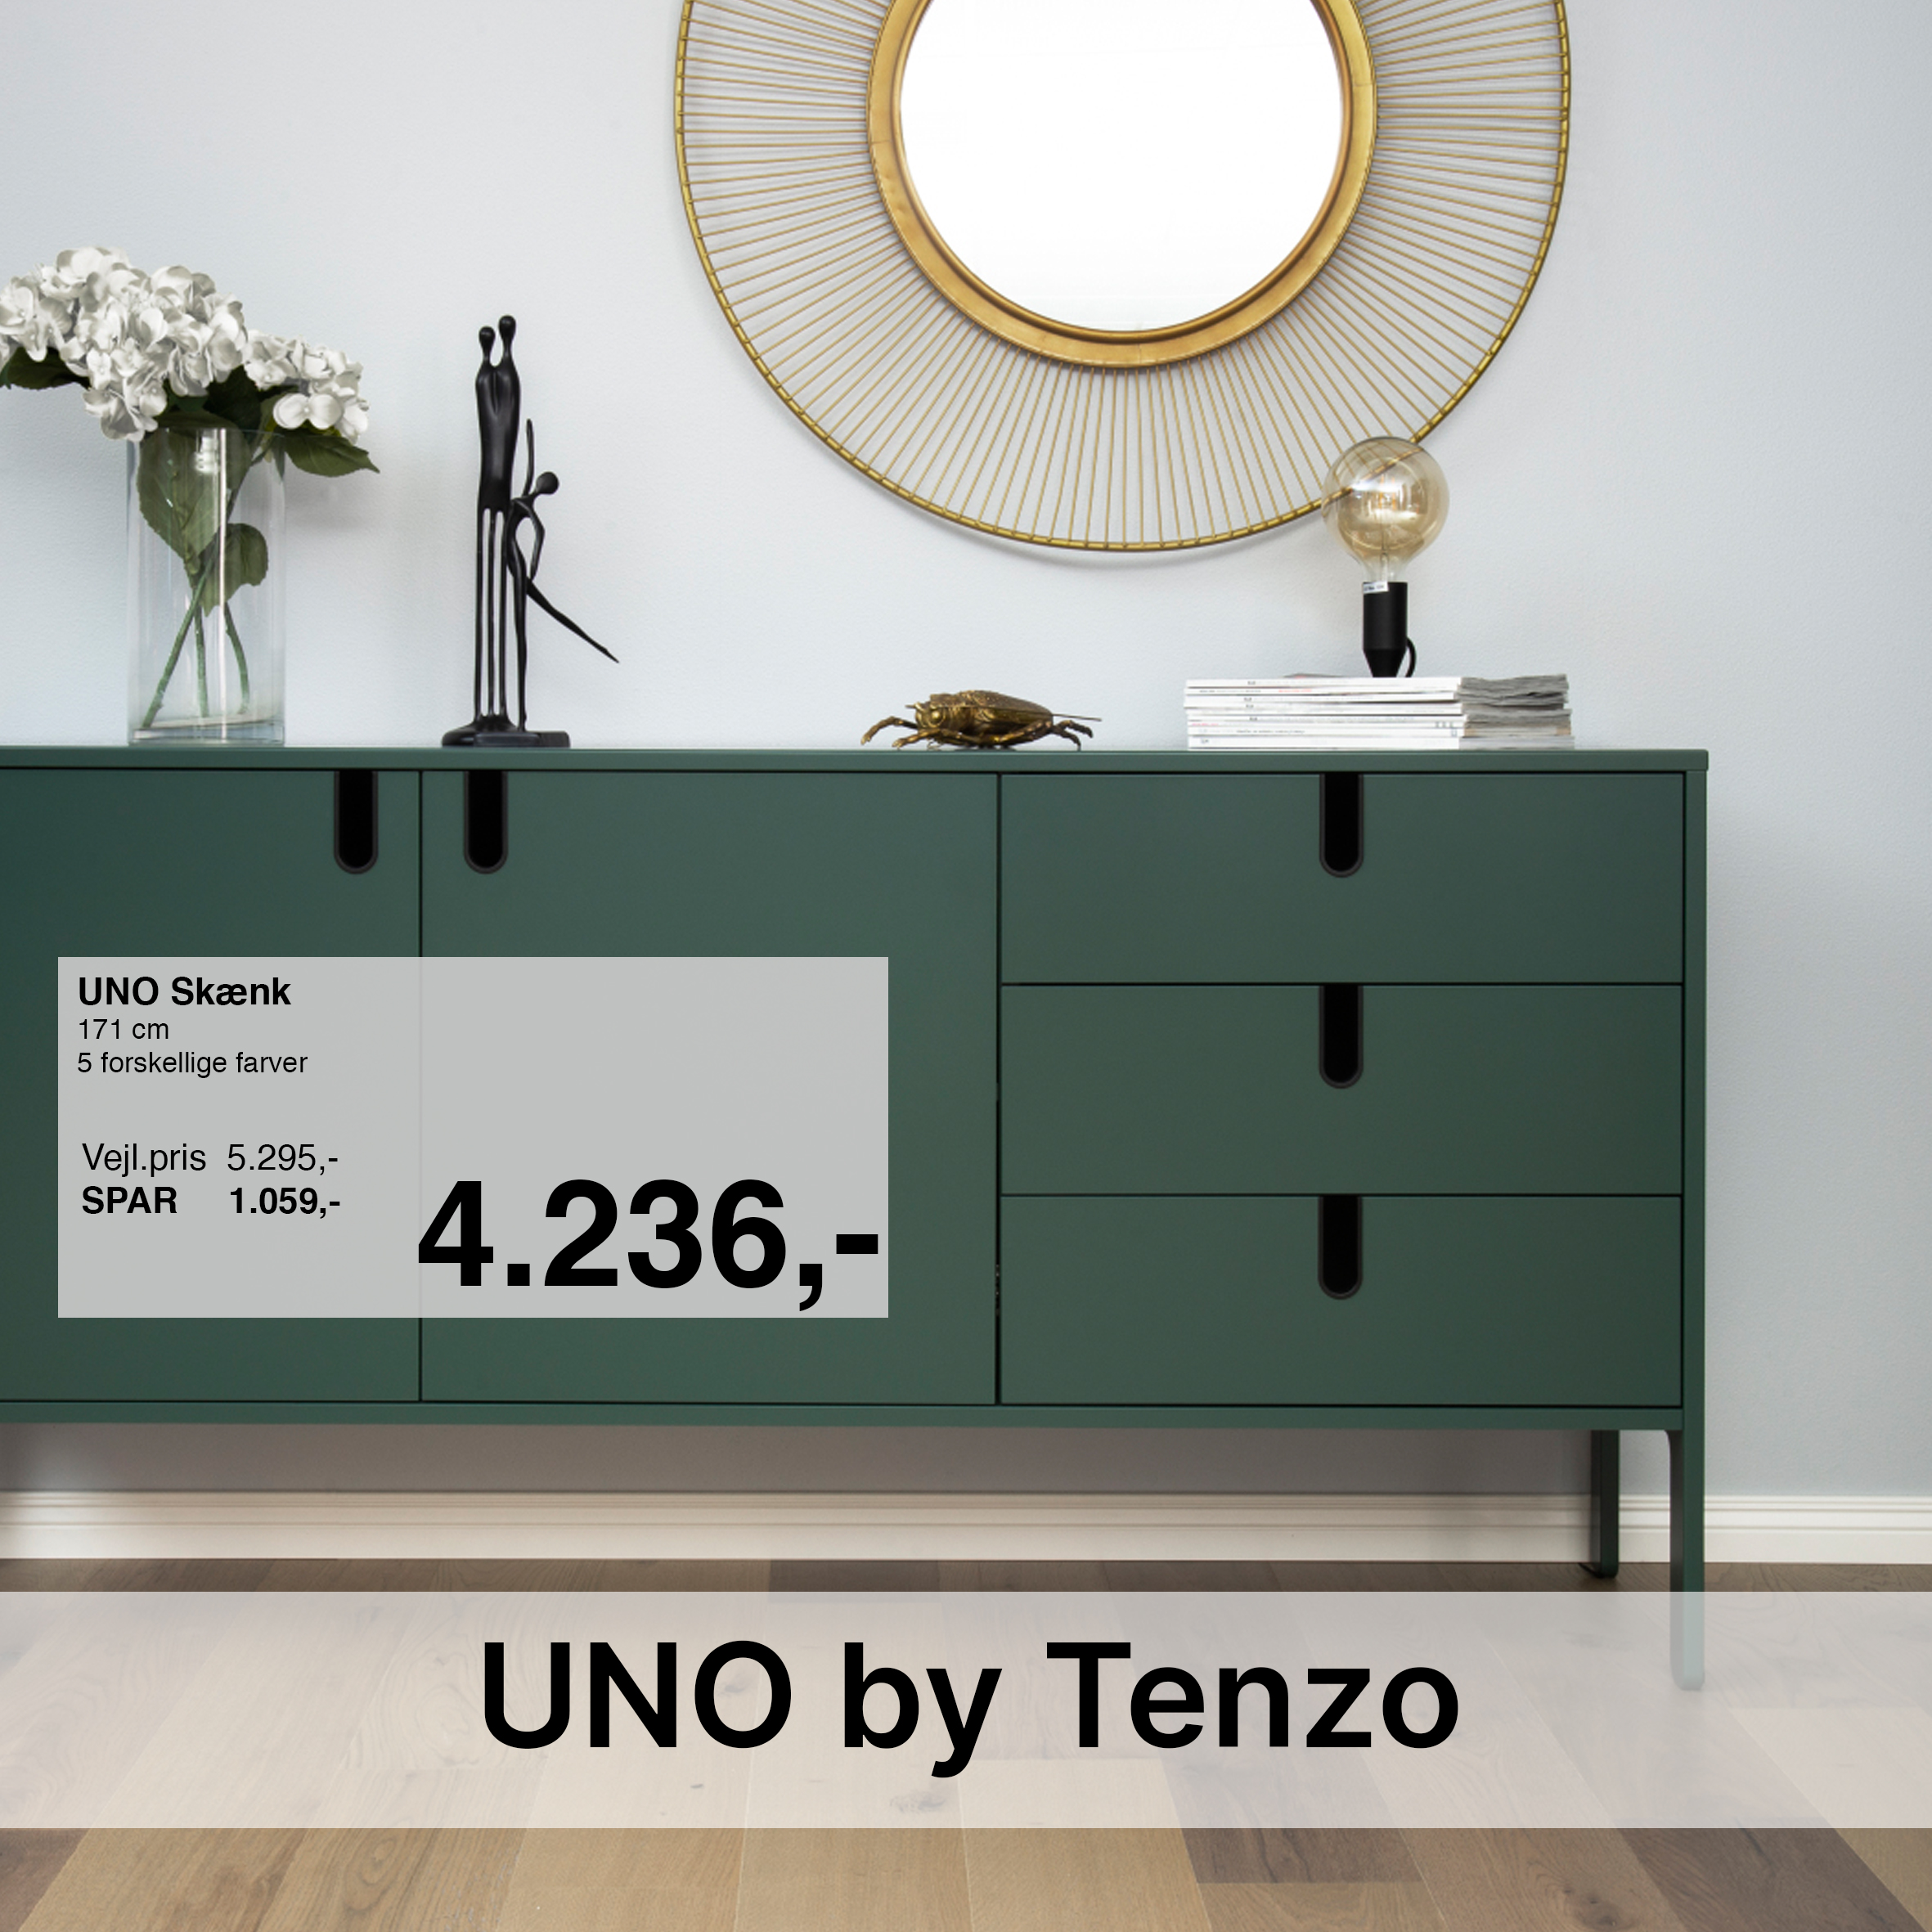 Uno by Tenzo